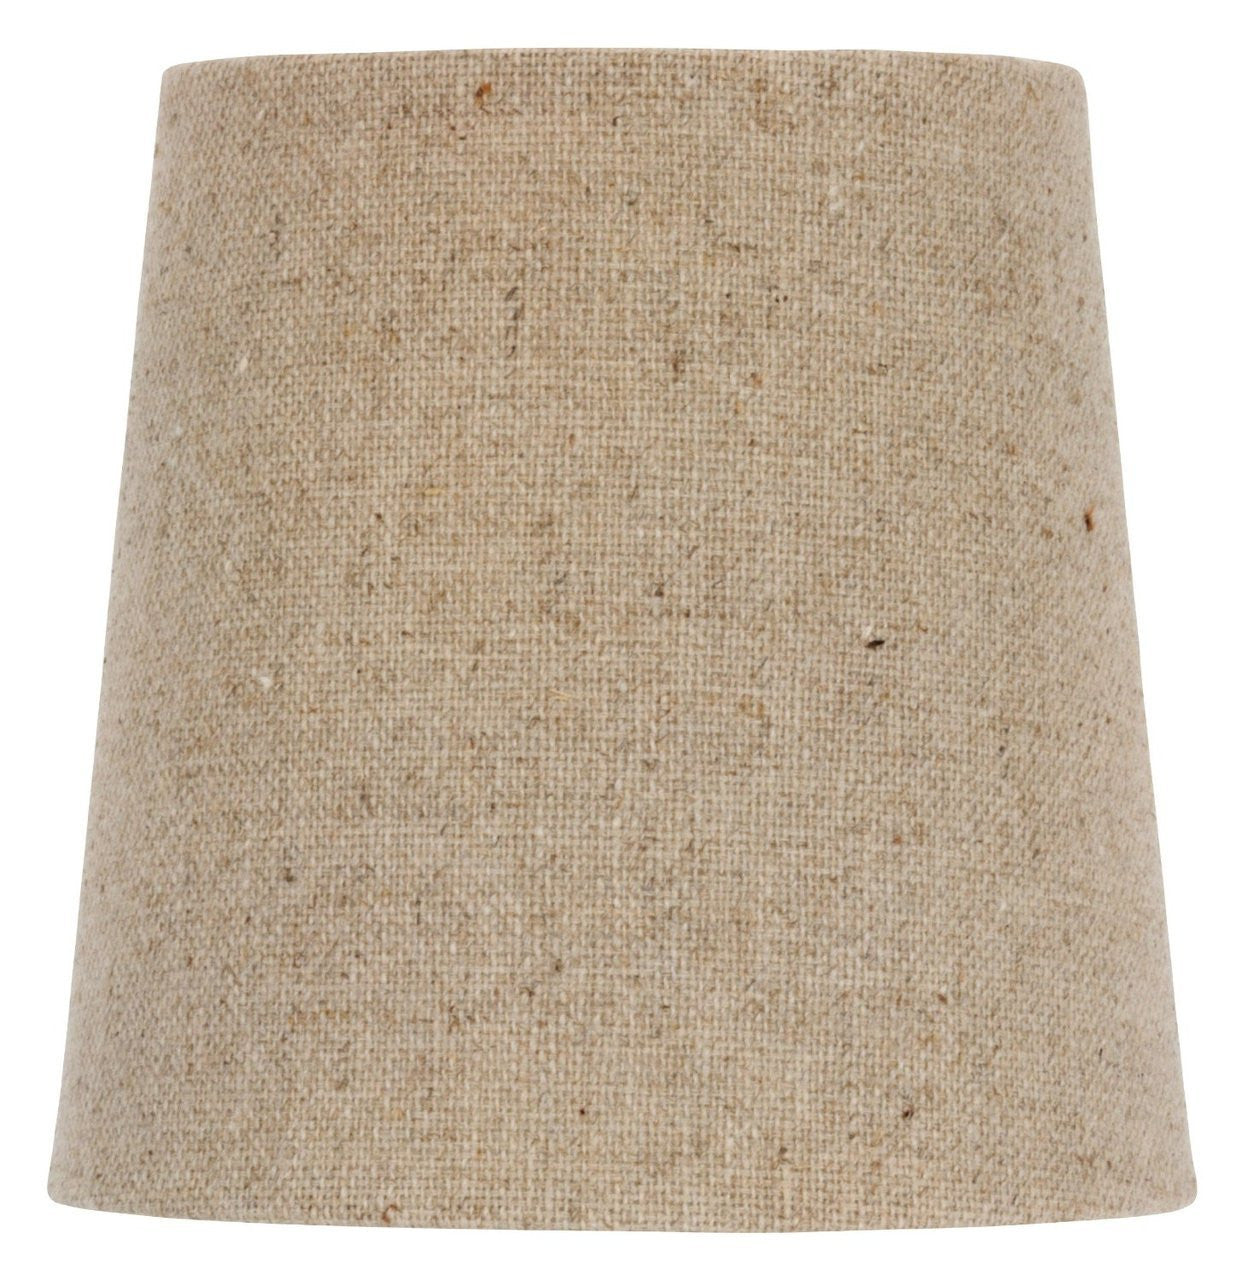 Chandelier lamp shade clip on shade 5 inch beige linen retro drum upgradelights chandelier lamp shade clip on shade 5 inch beige linen retro drum clips onto bulb aloadofball Gallery